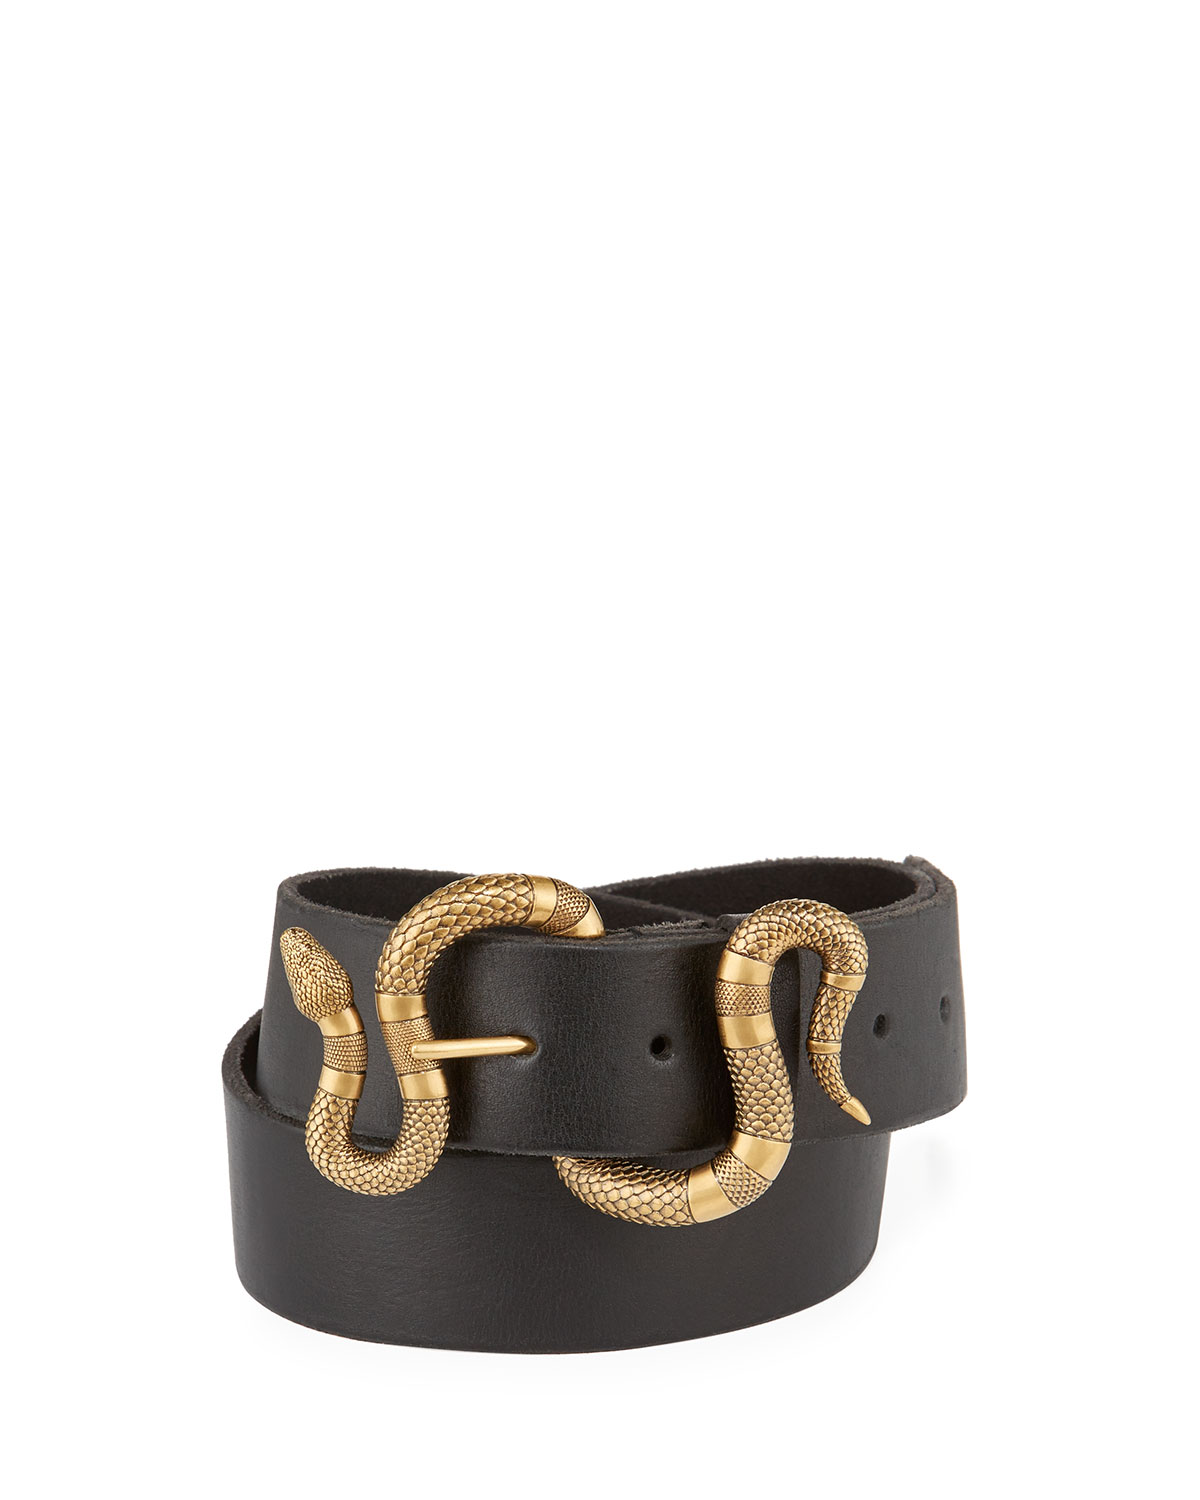 5cf538bd7 Gucci Leather Snake-Buckle Belt   Neiman Marcus